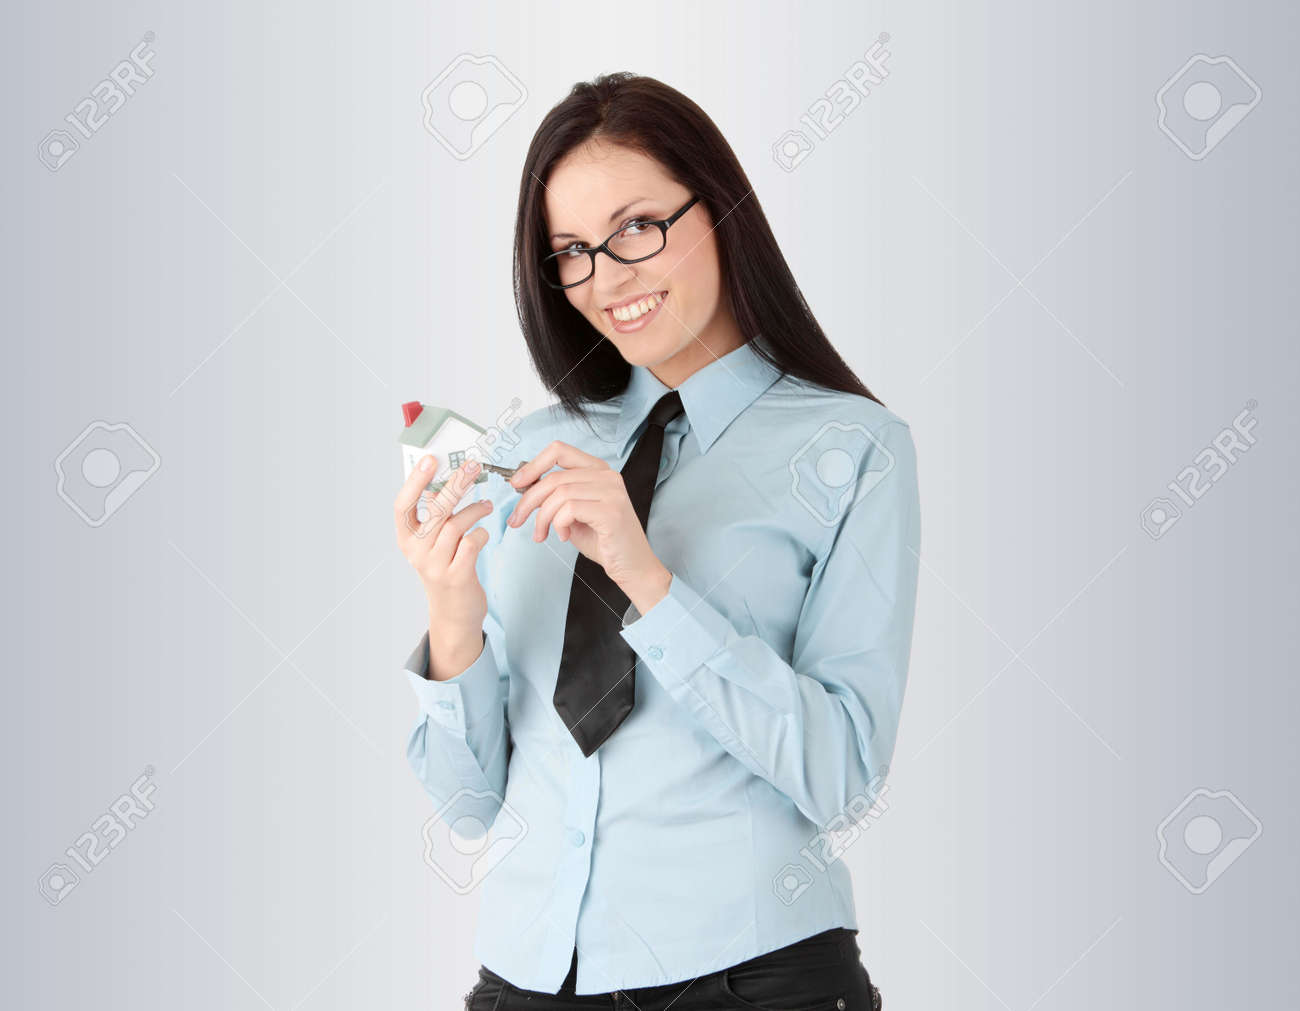 Young businesswoman  (real estate agent) with hose model and kays Stock Photo - 6475420